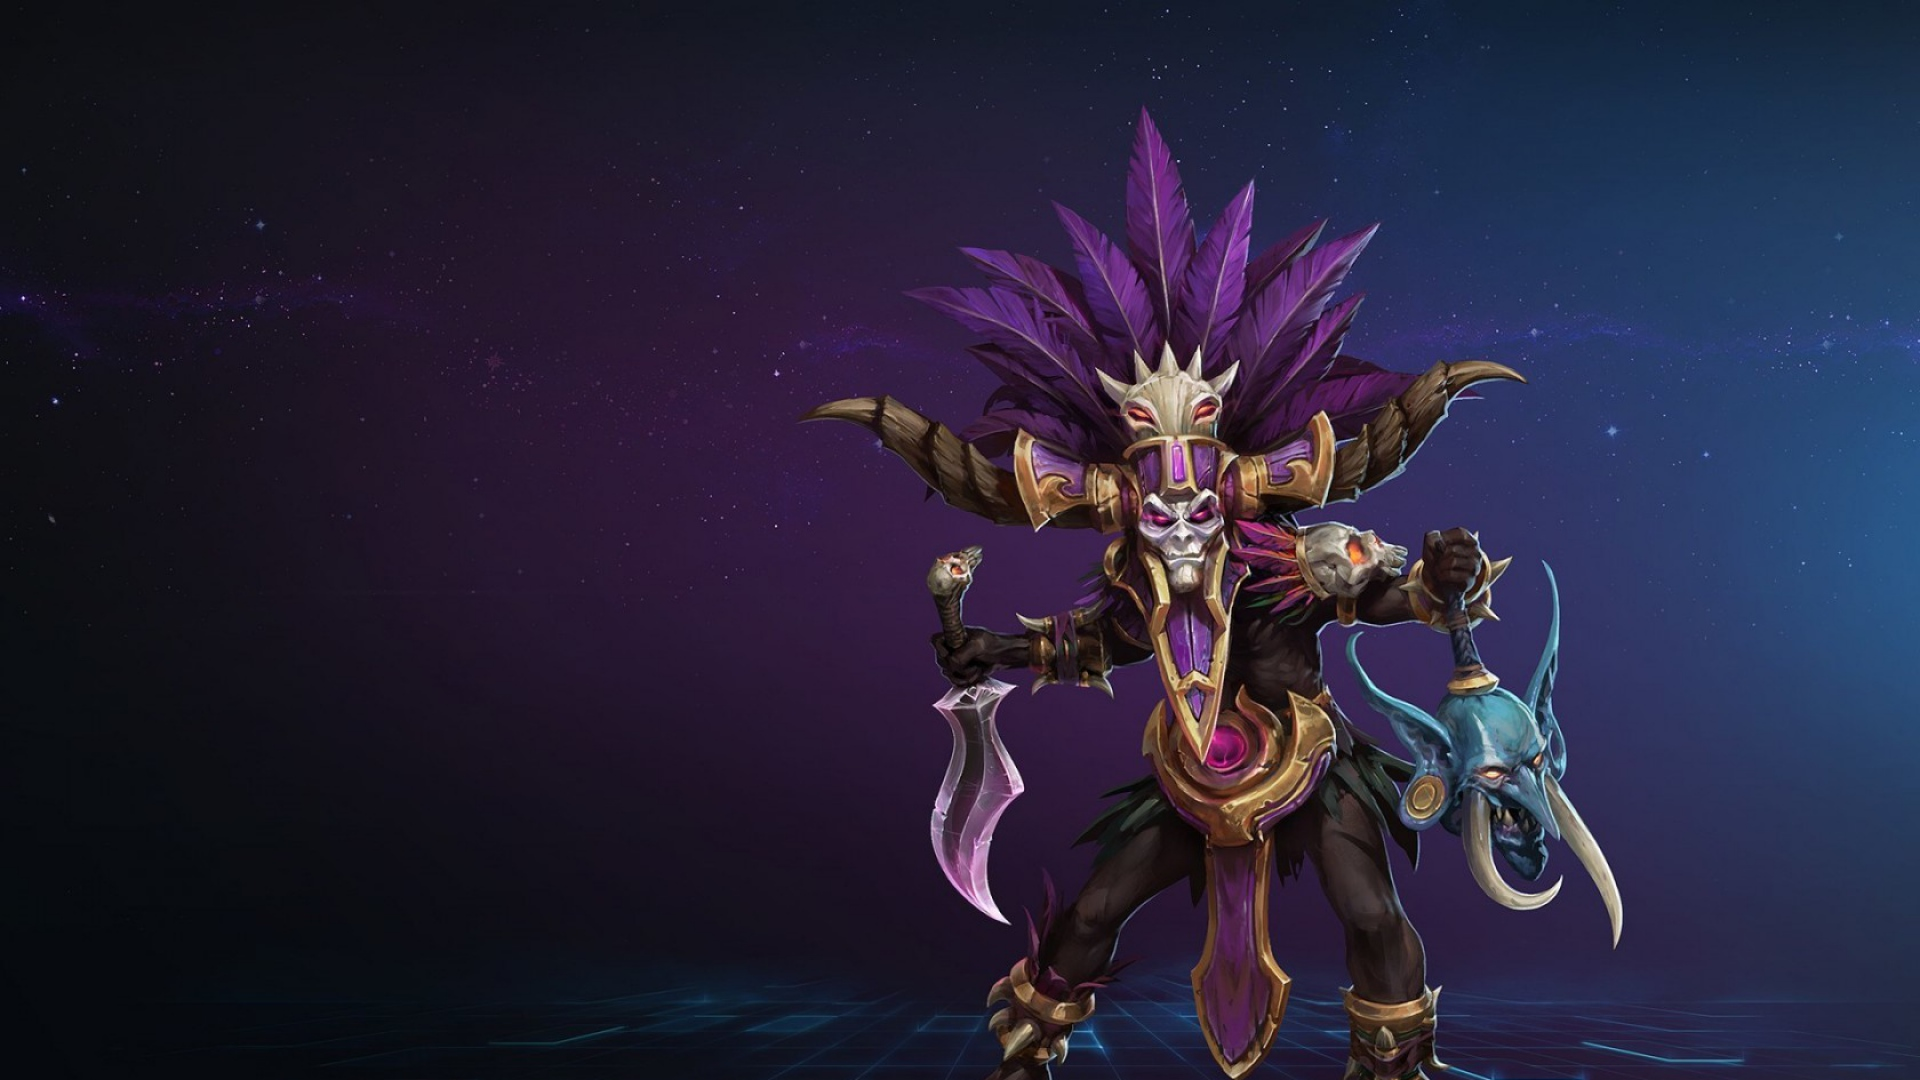 Free Download 1920x1080 Heroes Of The Storm Blizzard Warlock